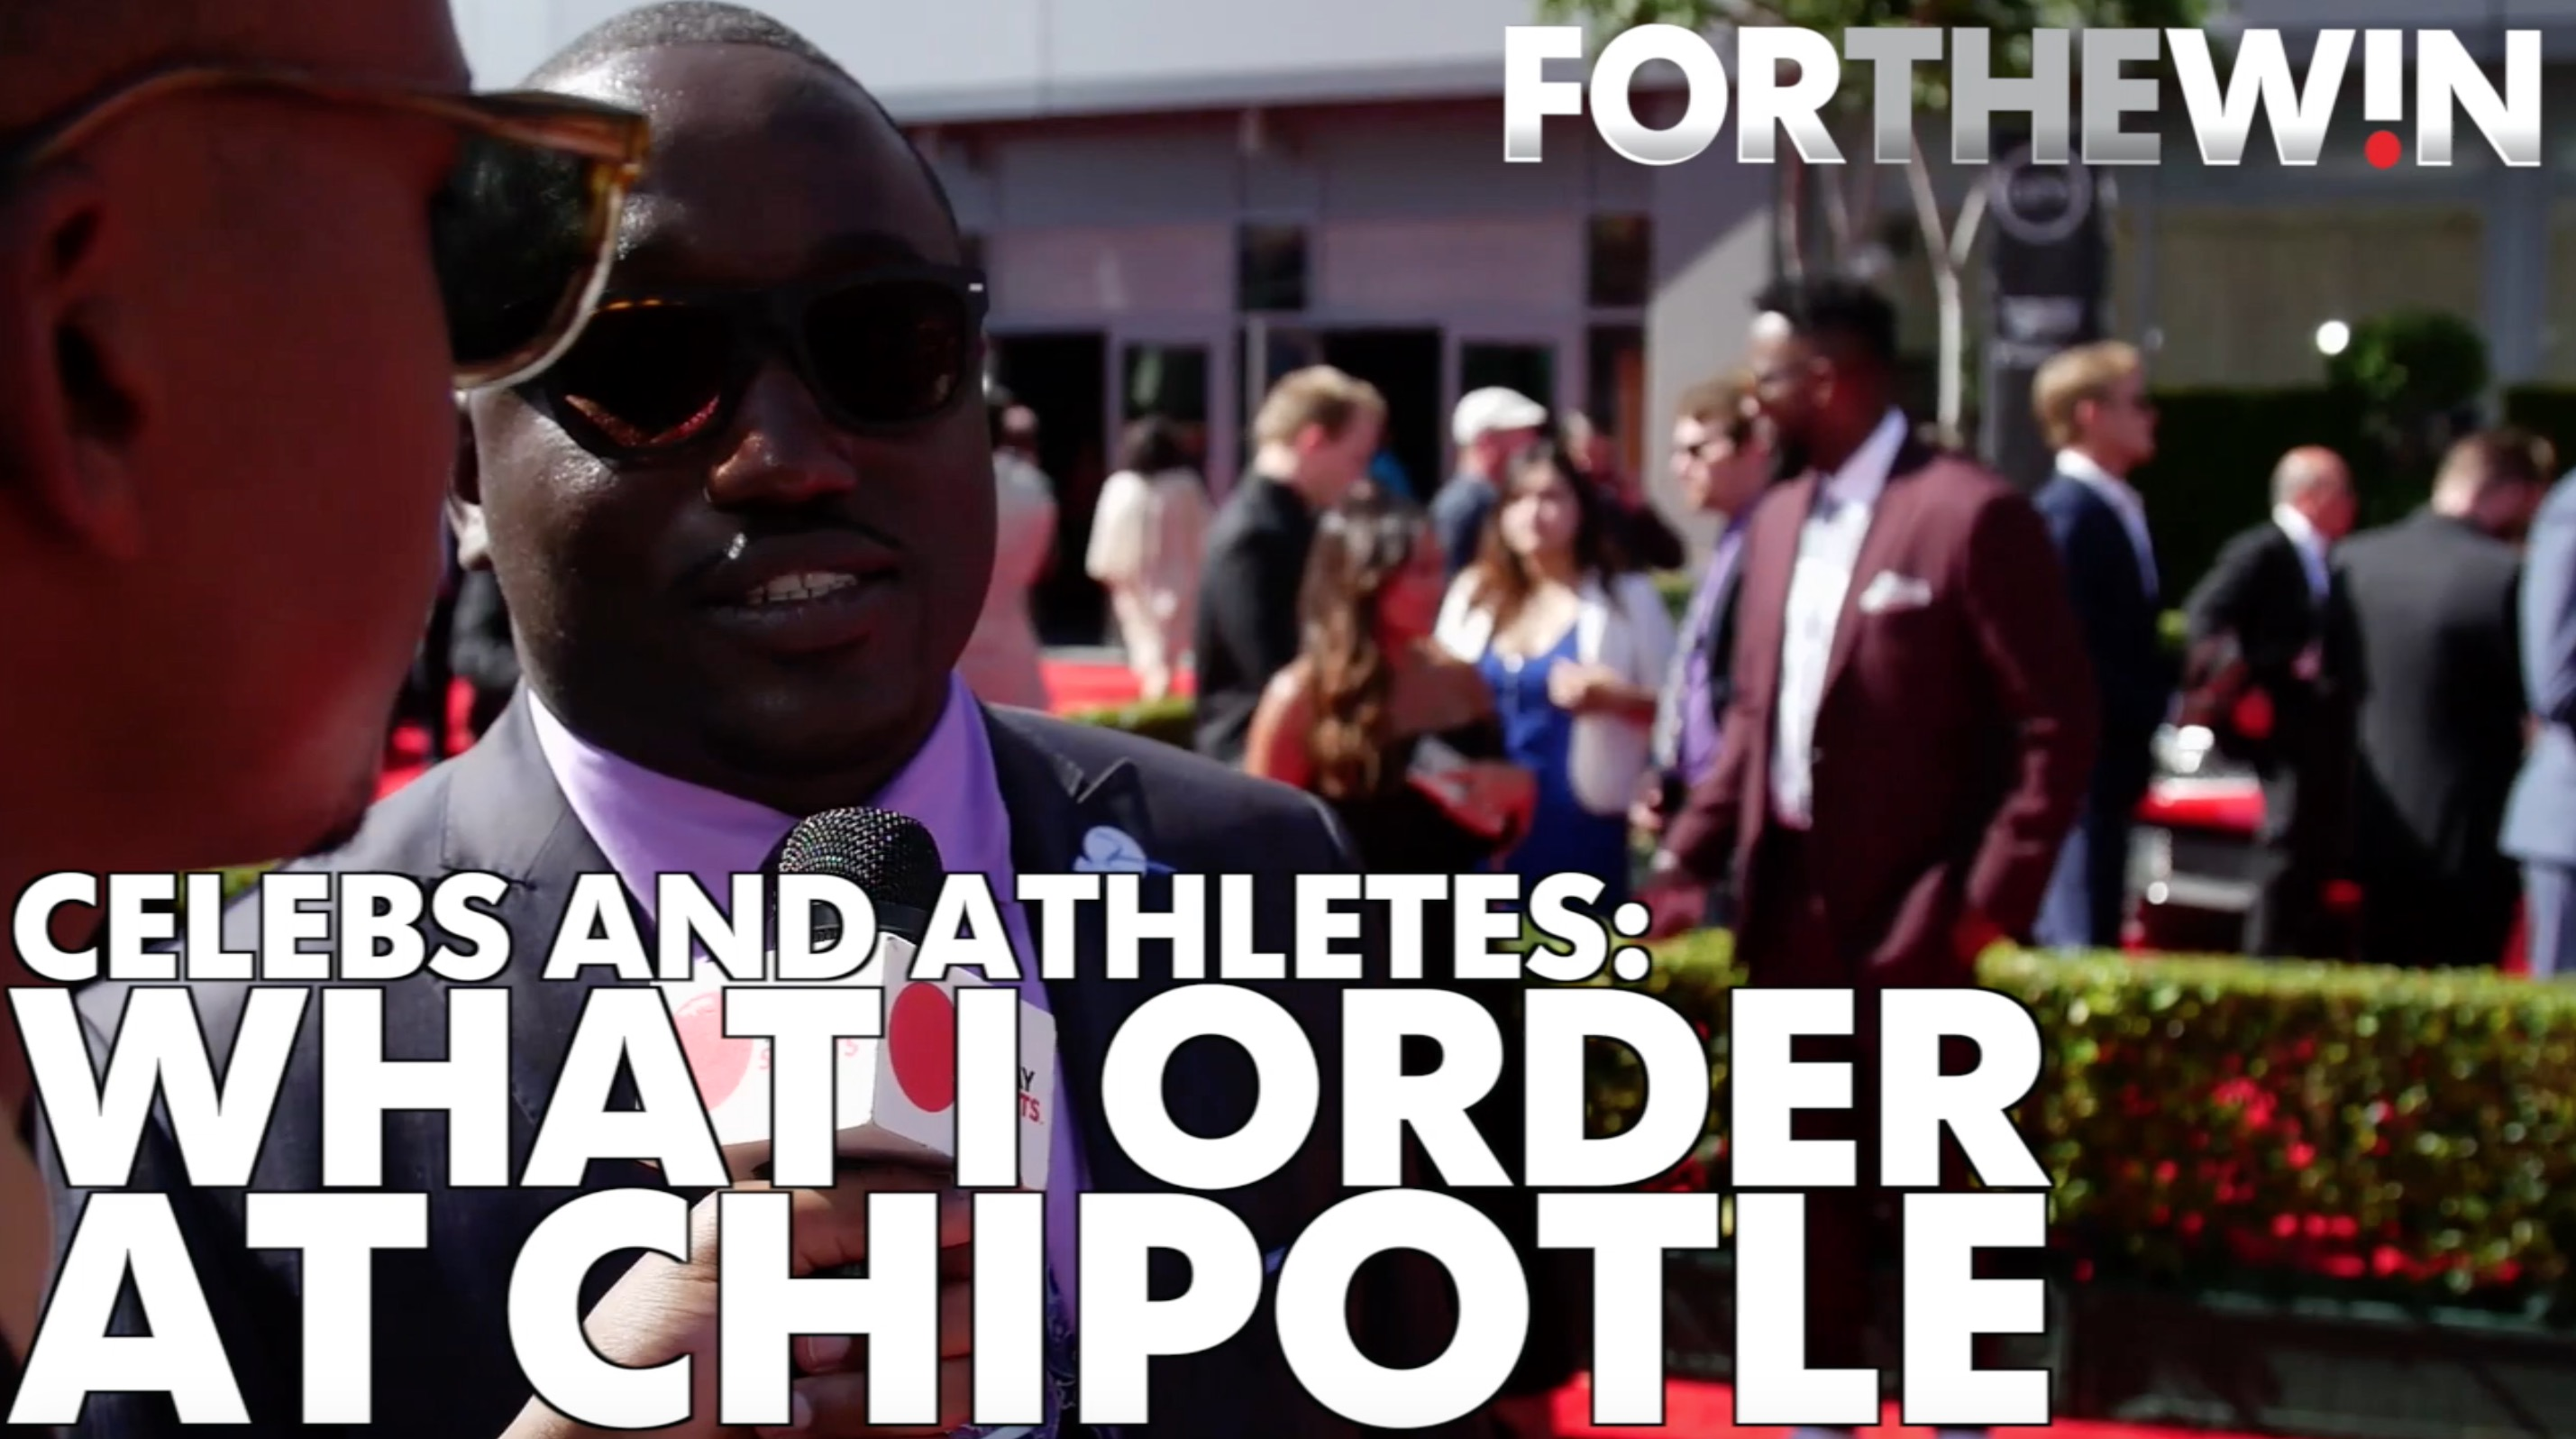 Celebs and athletes: What I order at Chipotle